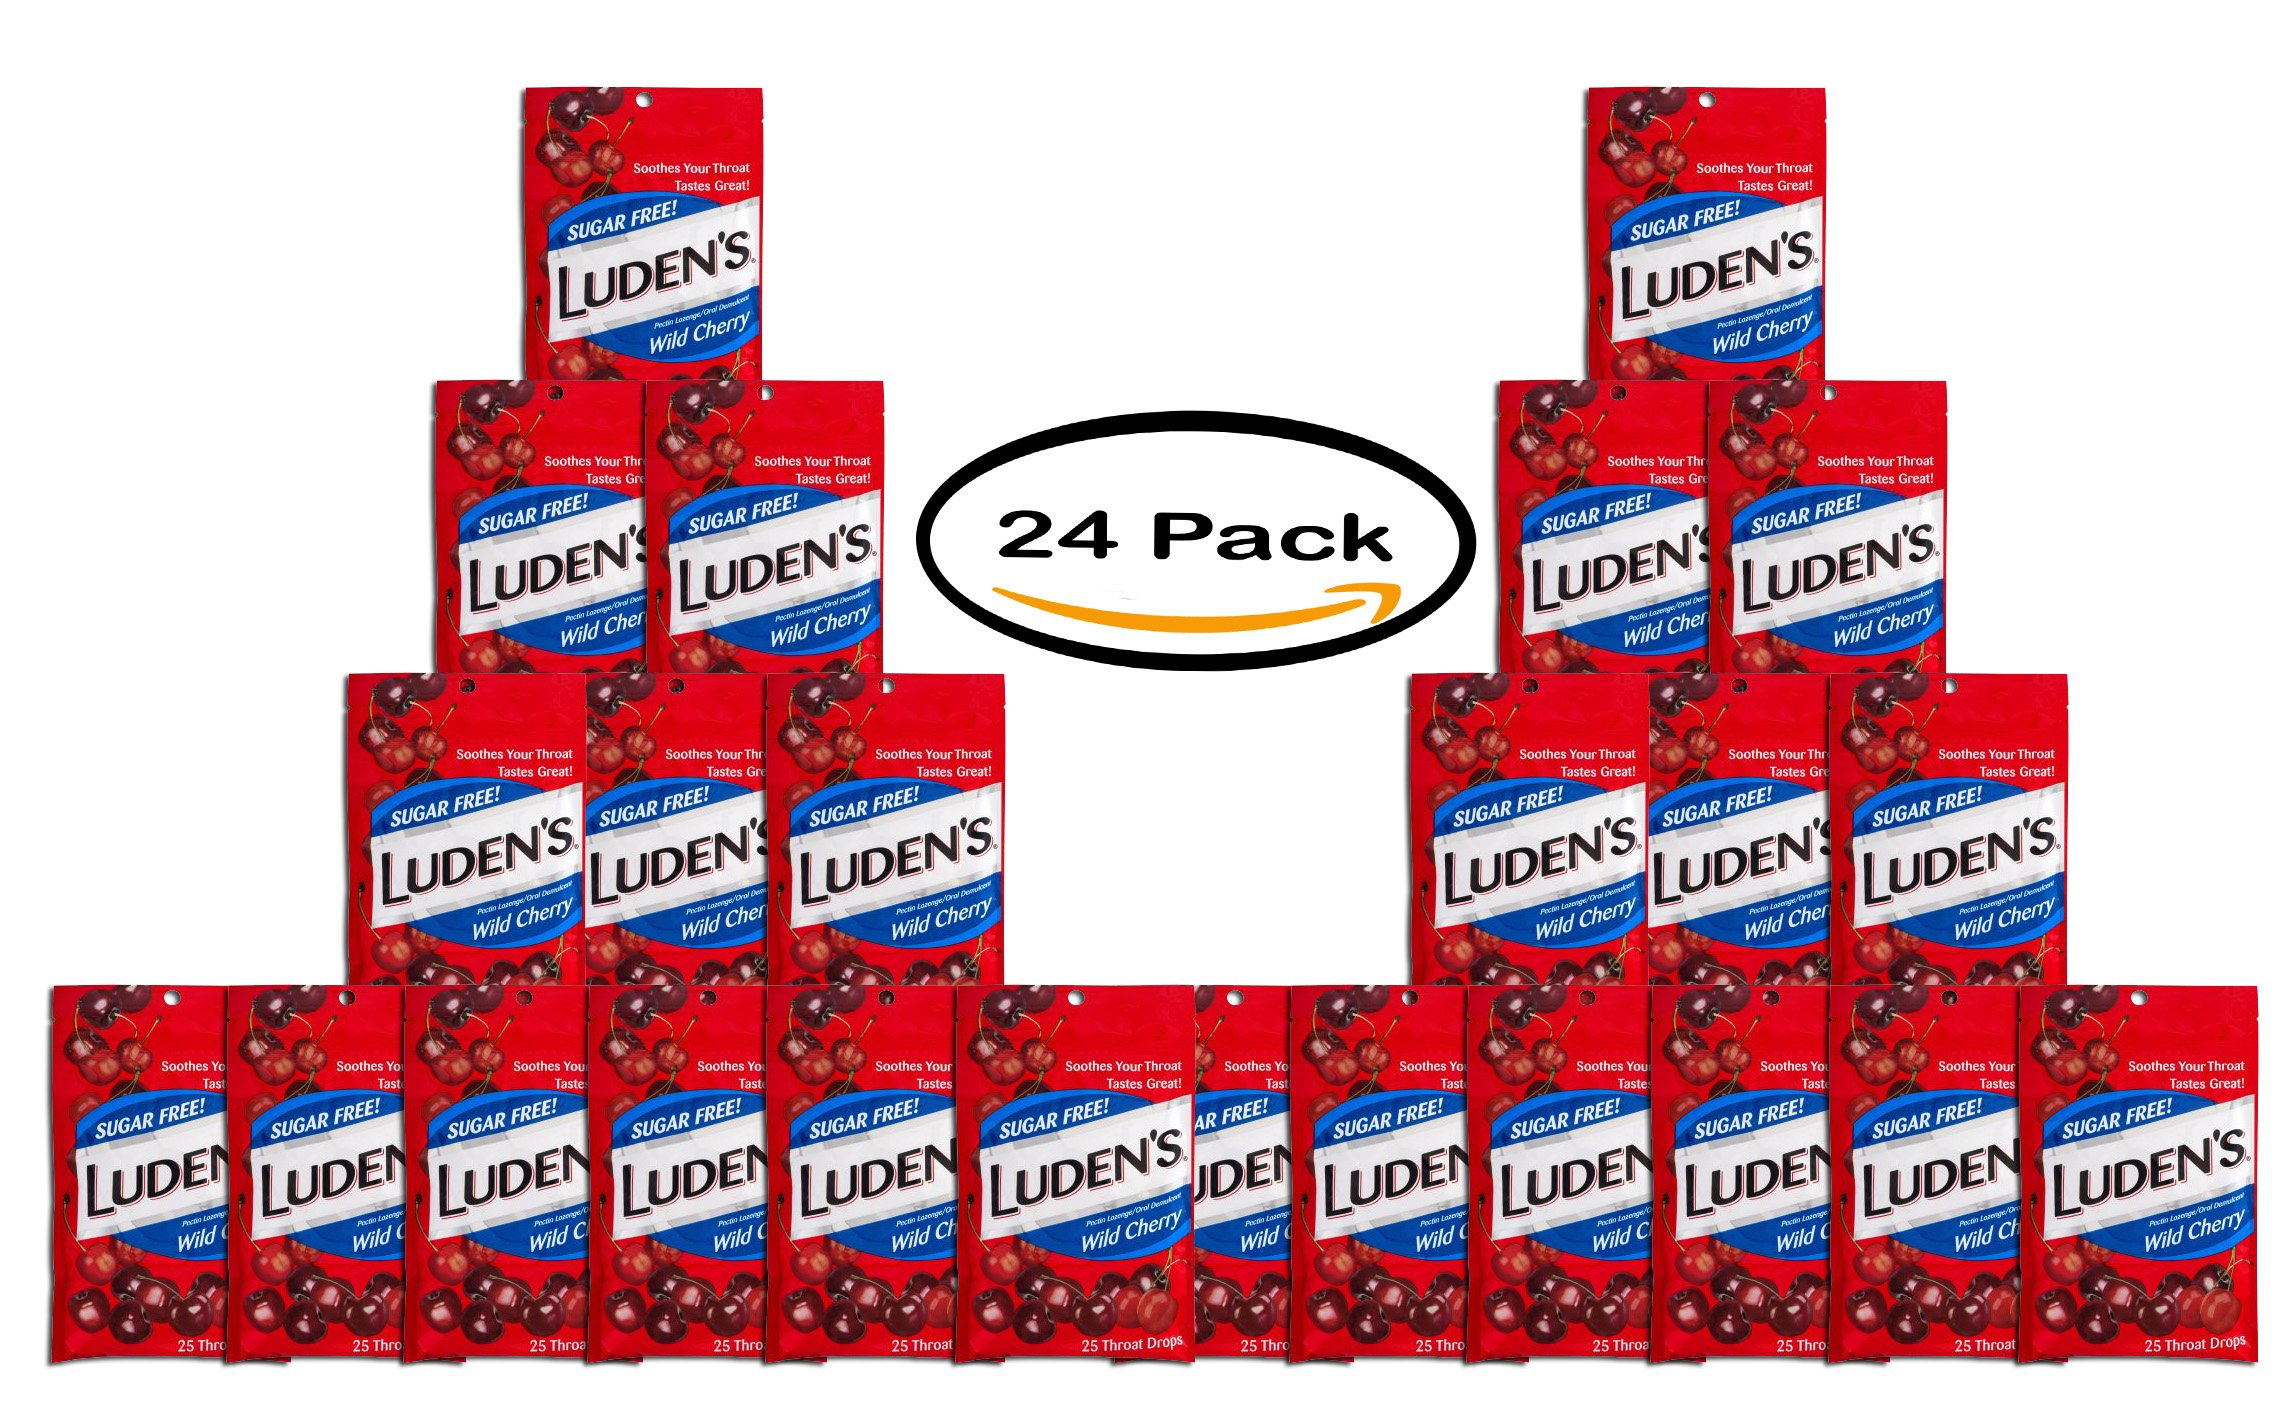 PACK OF 24 - Luden's Throat Drops Wild Cherry Sugar Free - 25 CT